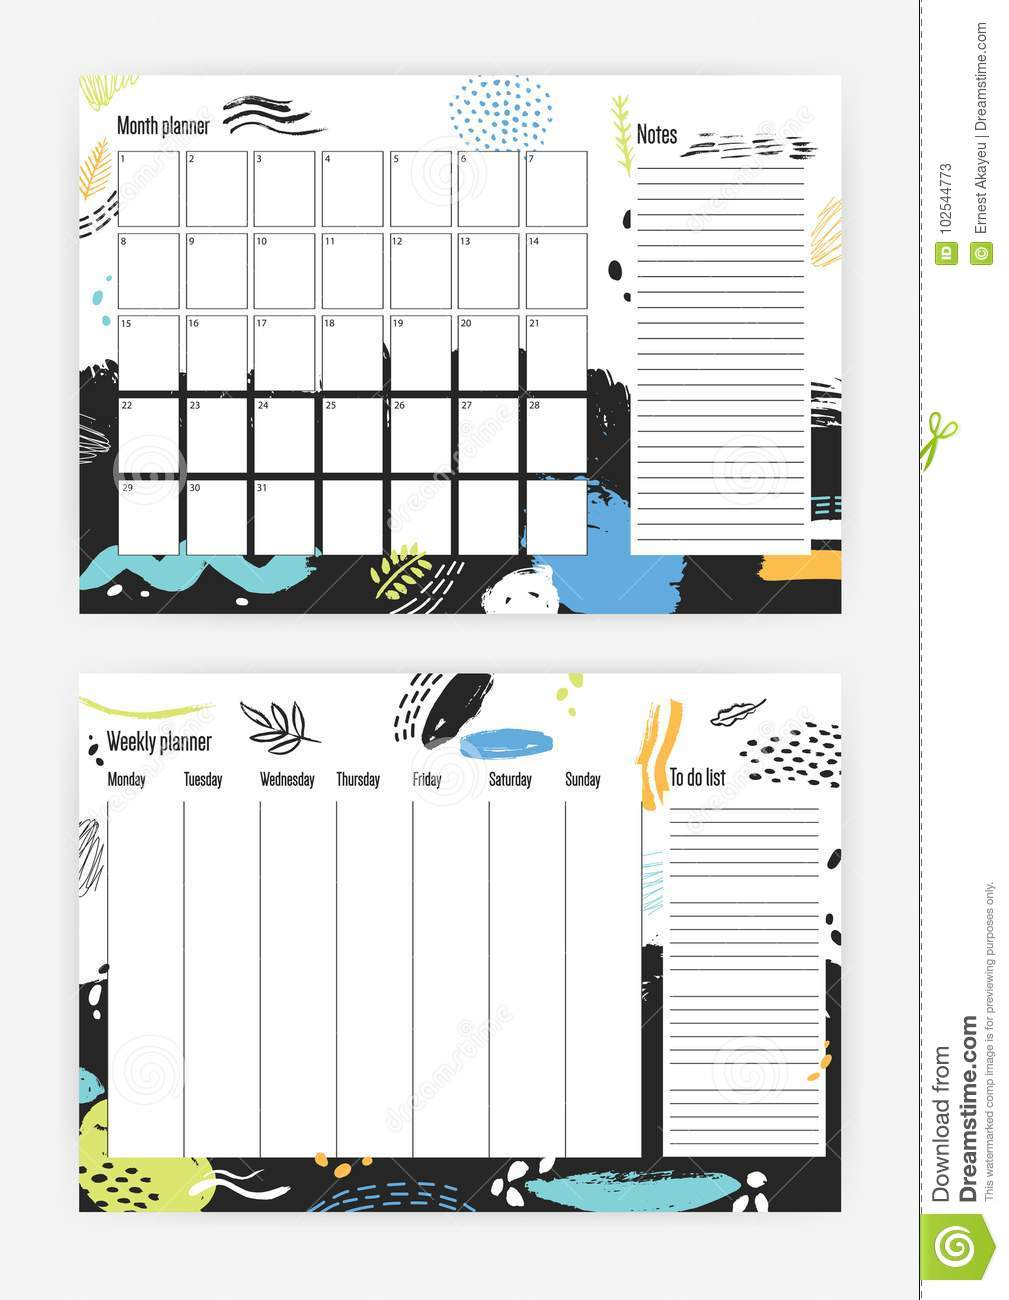 bundle of month and weekly planner templates with bright colored